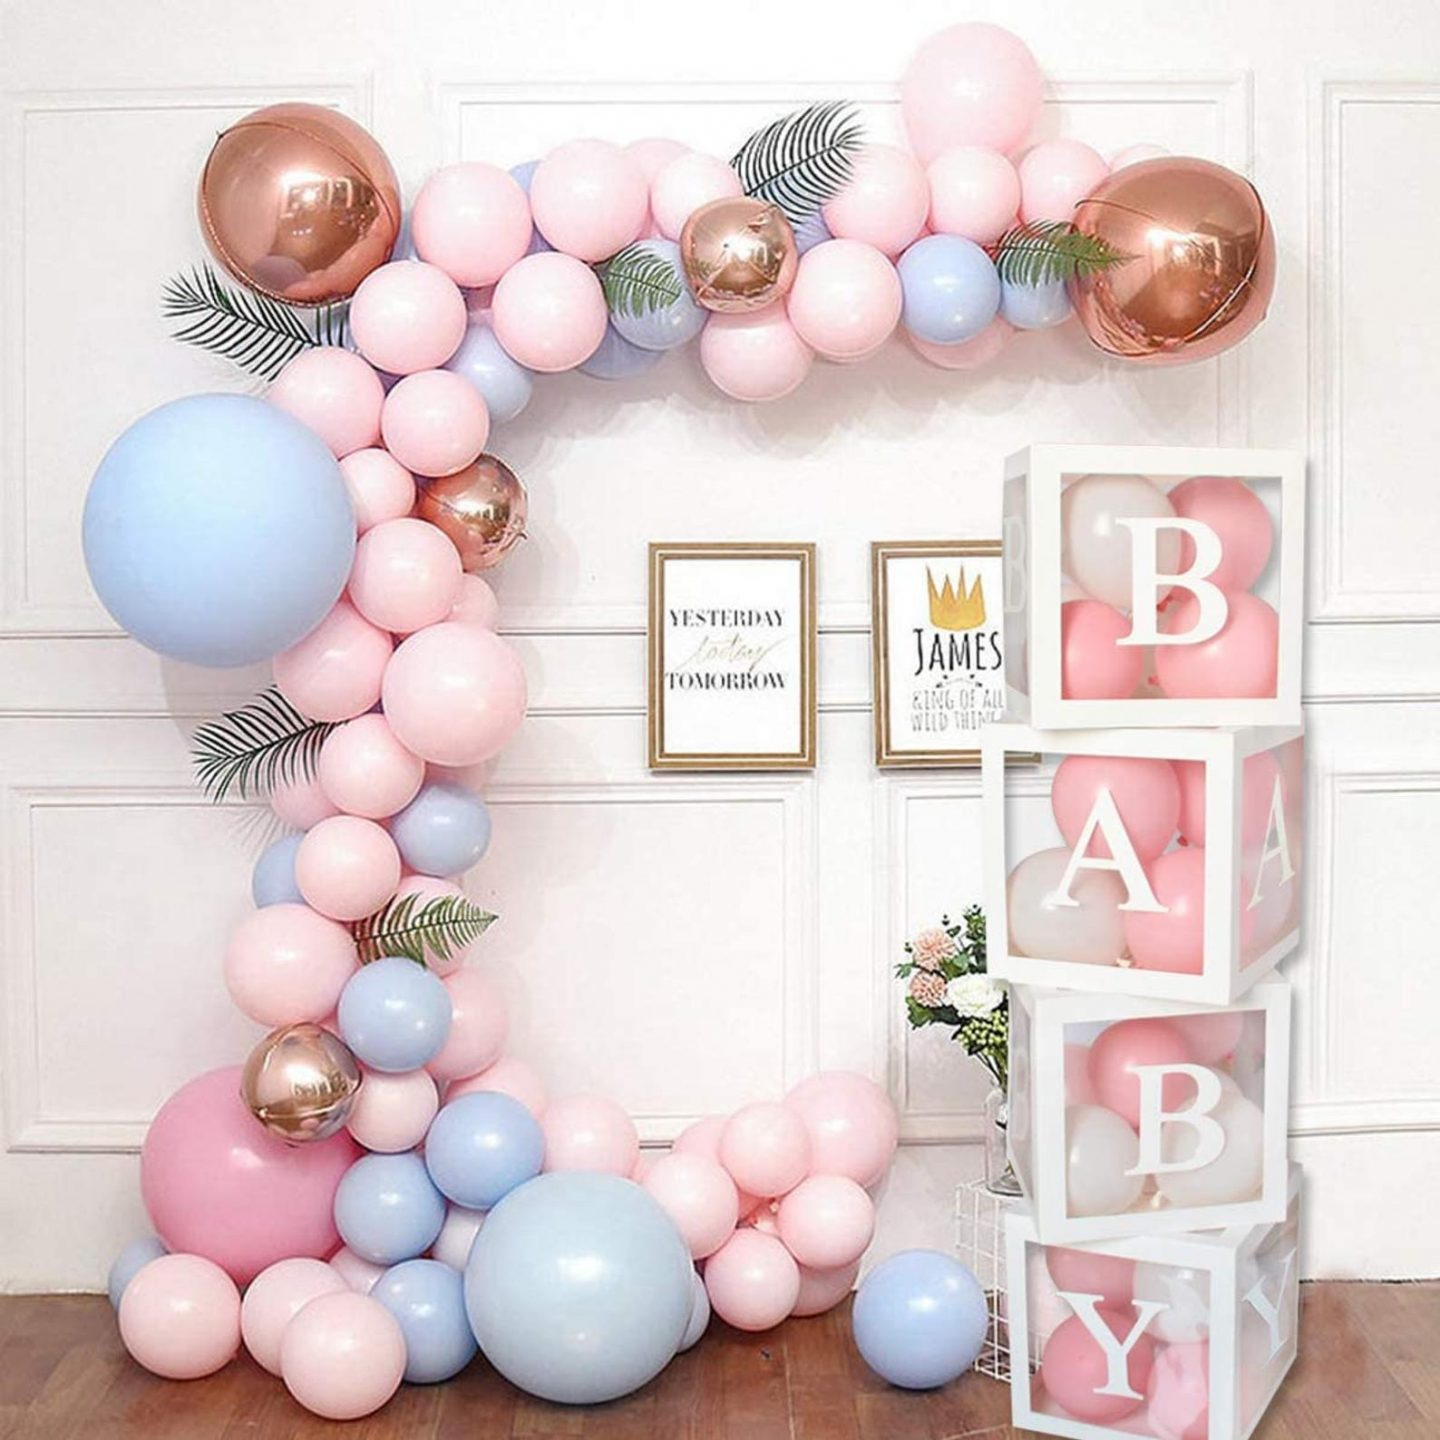 Pink and blue baby shower balloons and transparent boxes